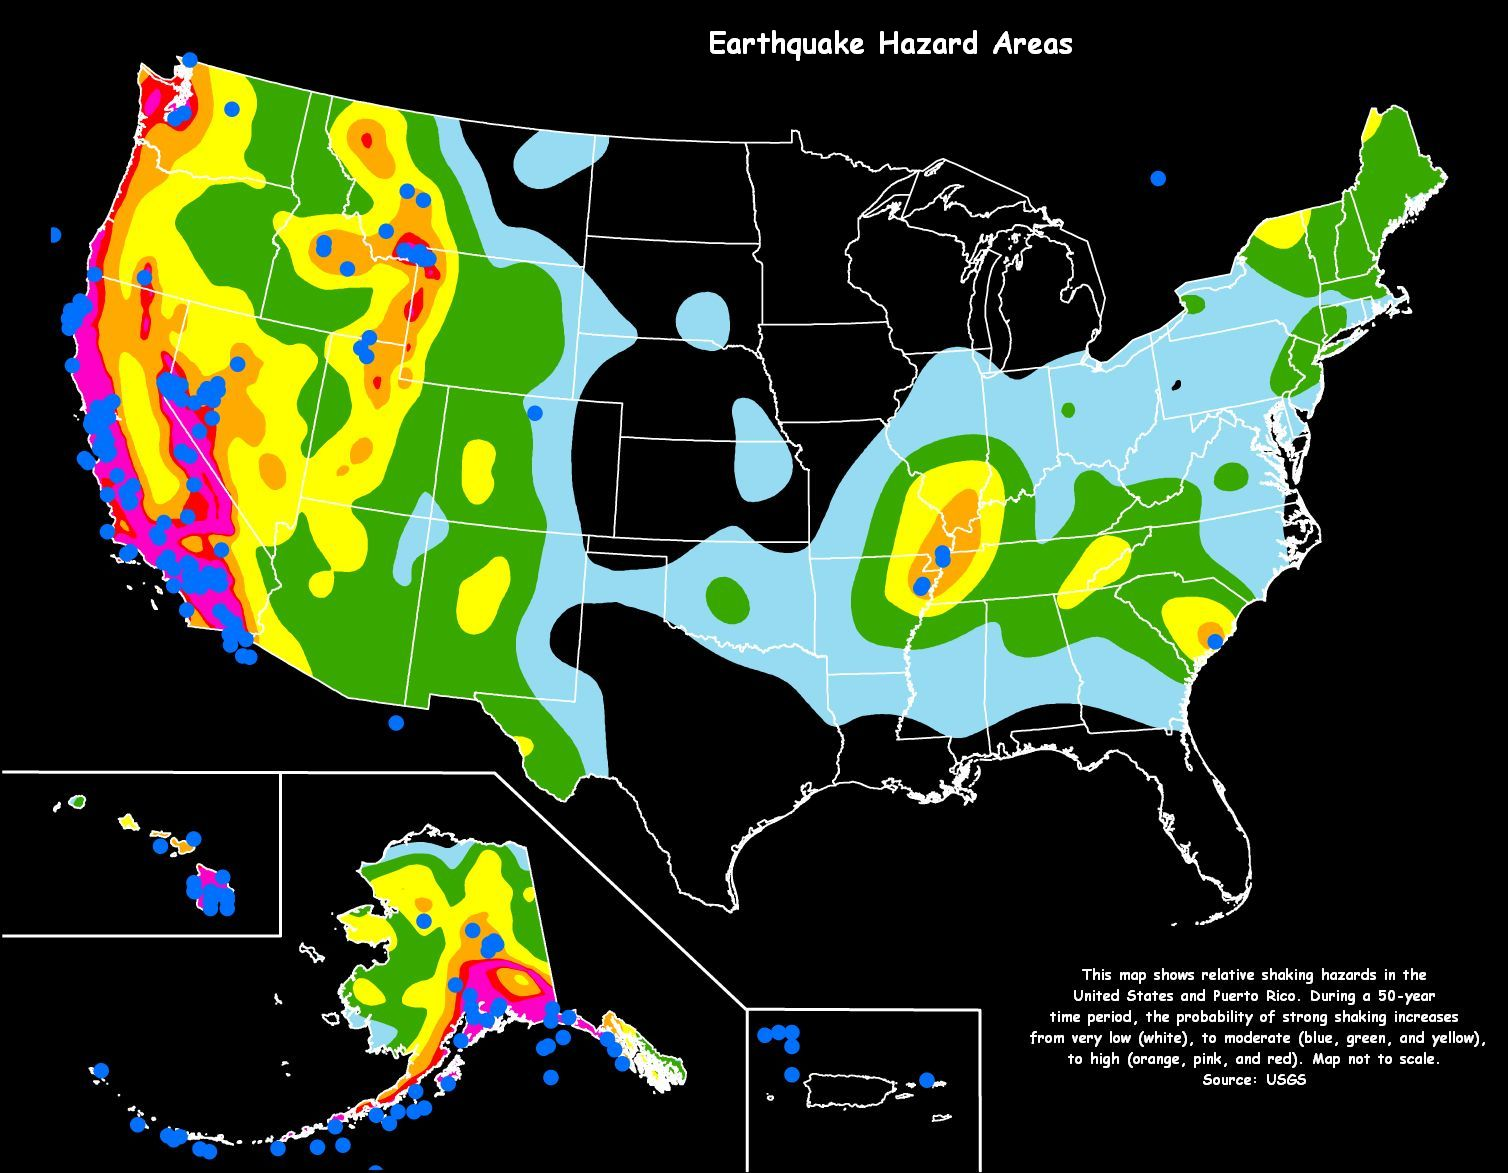 Heartland Danger Zones Emerge On New US Earthquake Hazard Map